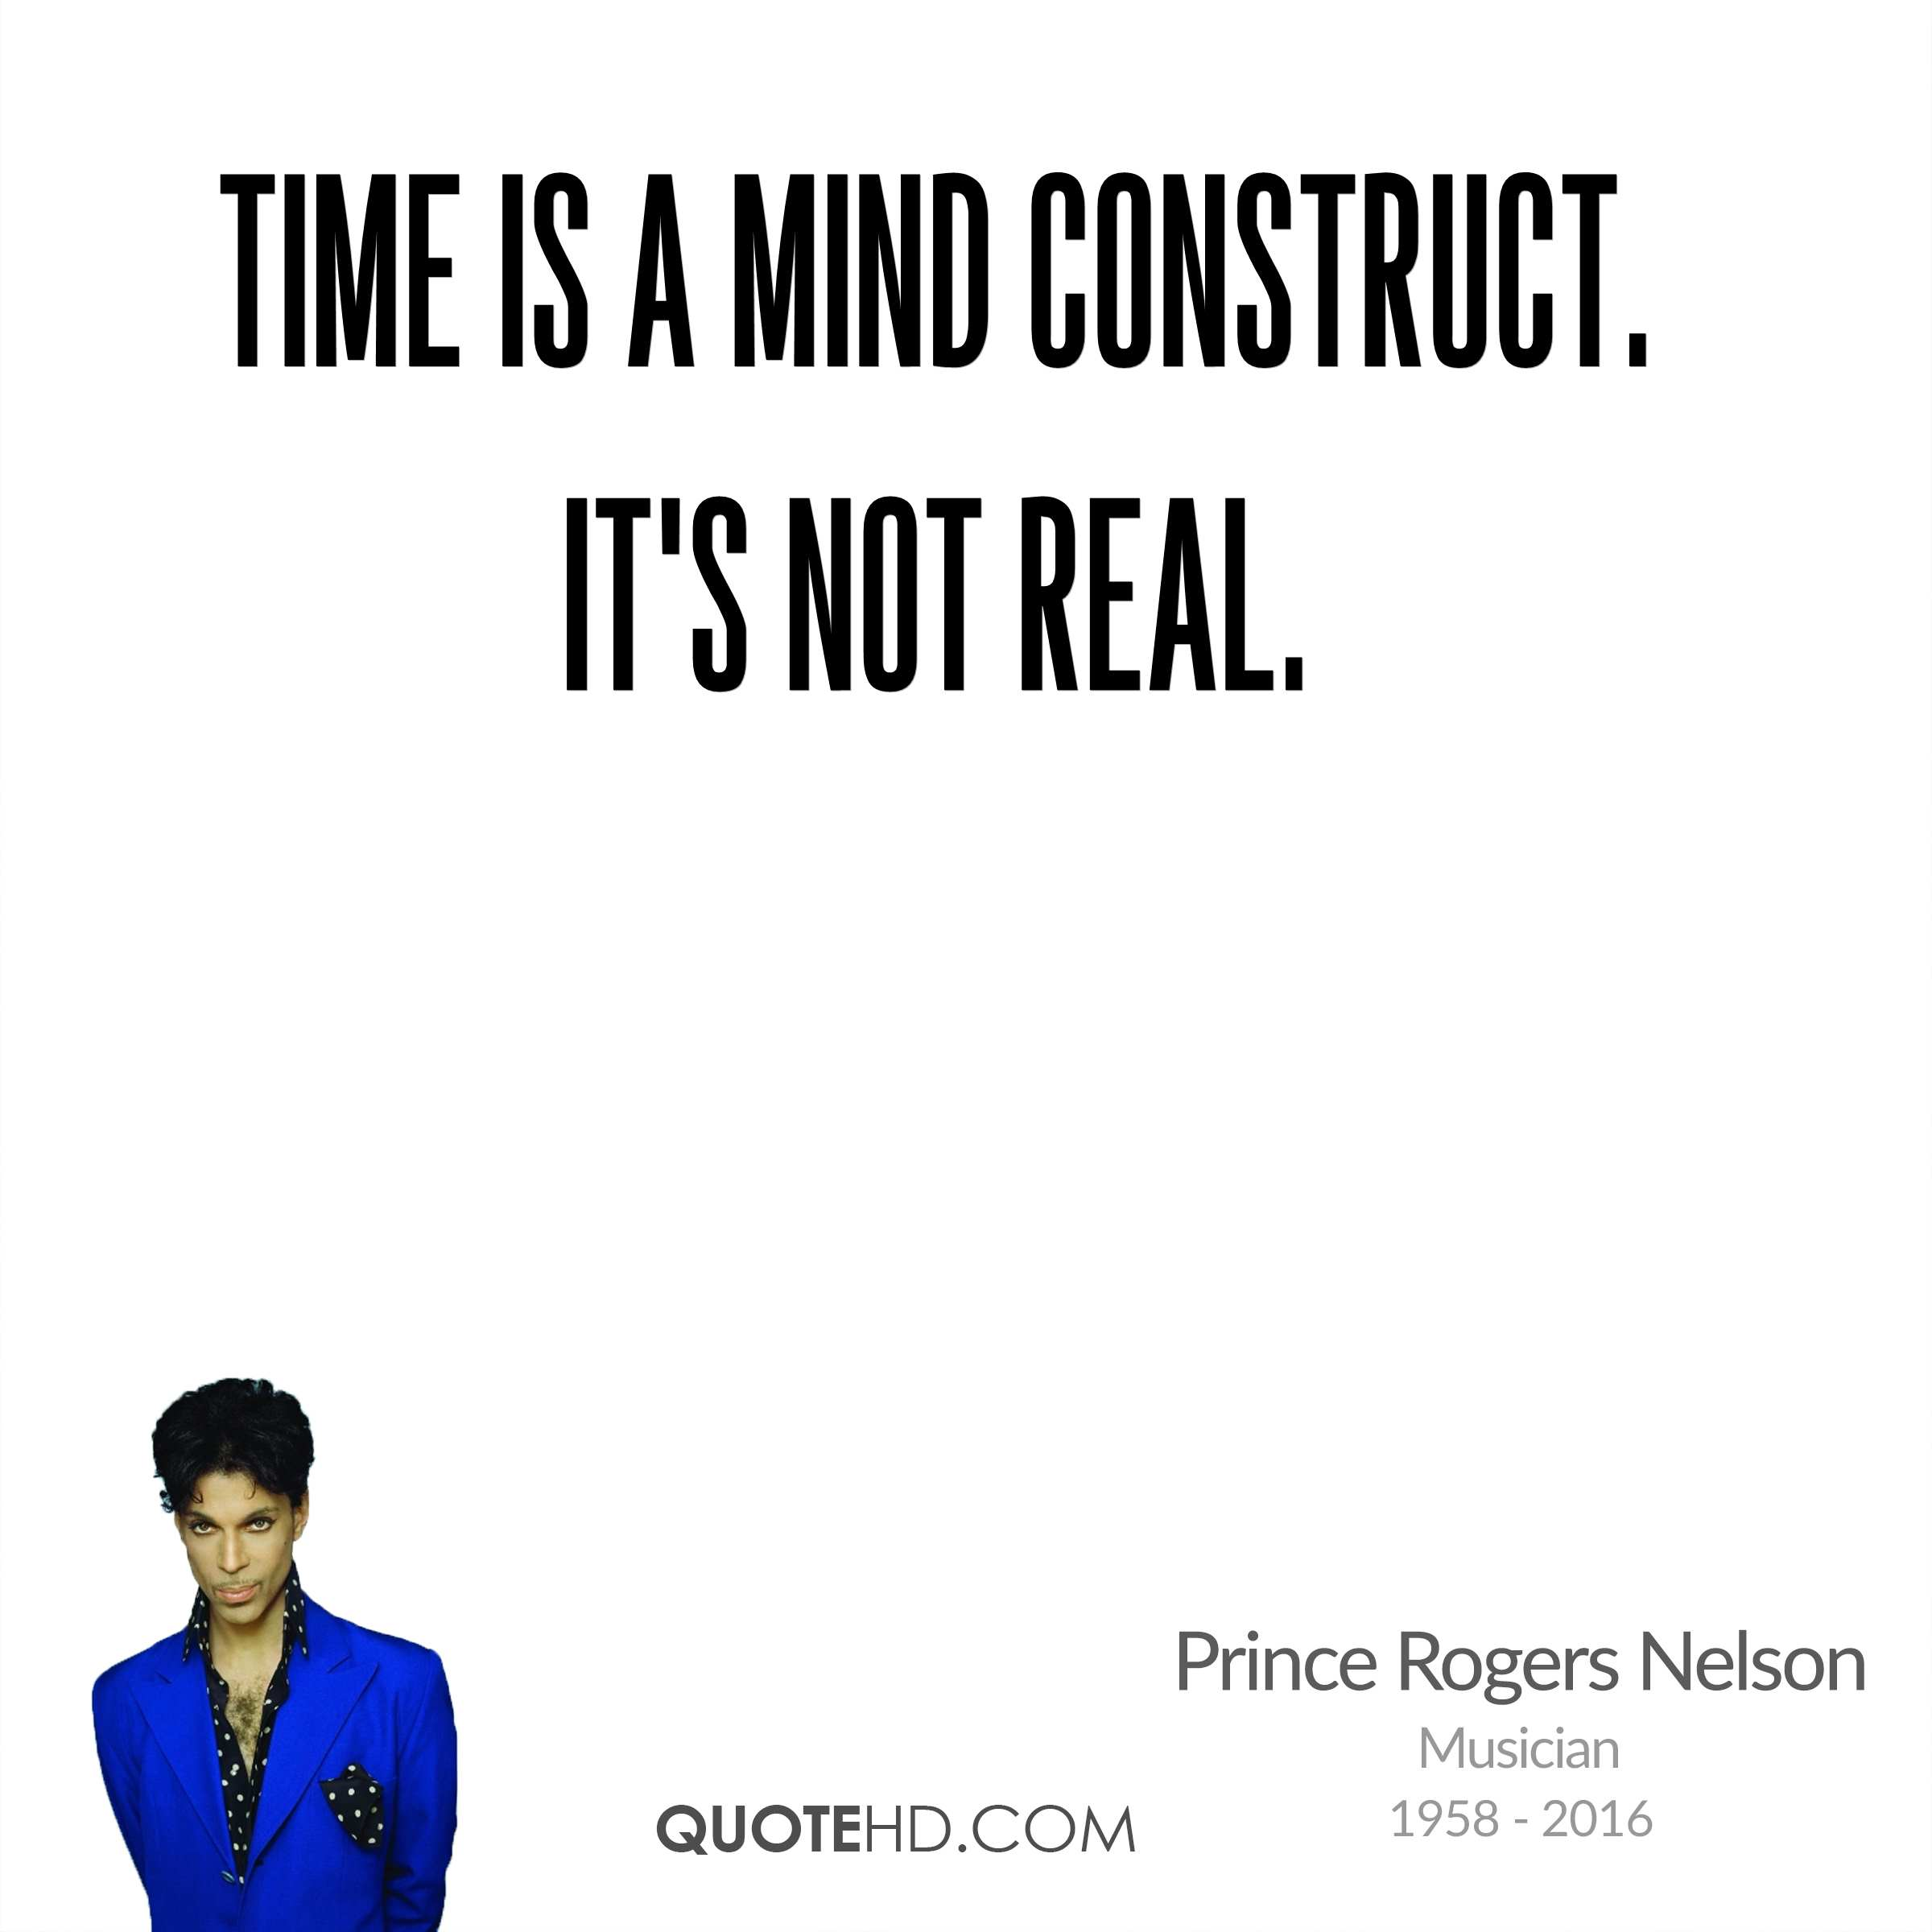 Time is a mind construct. It's not real.